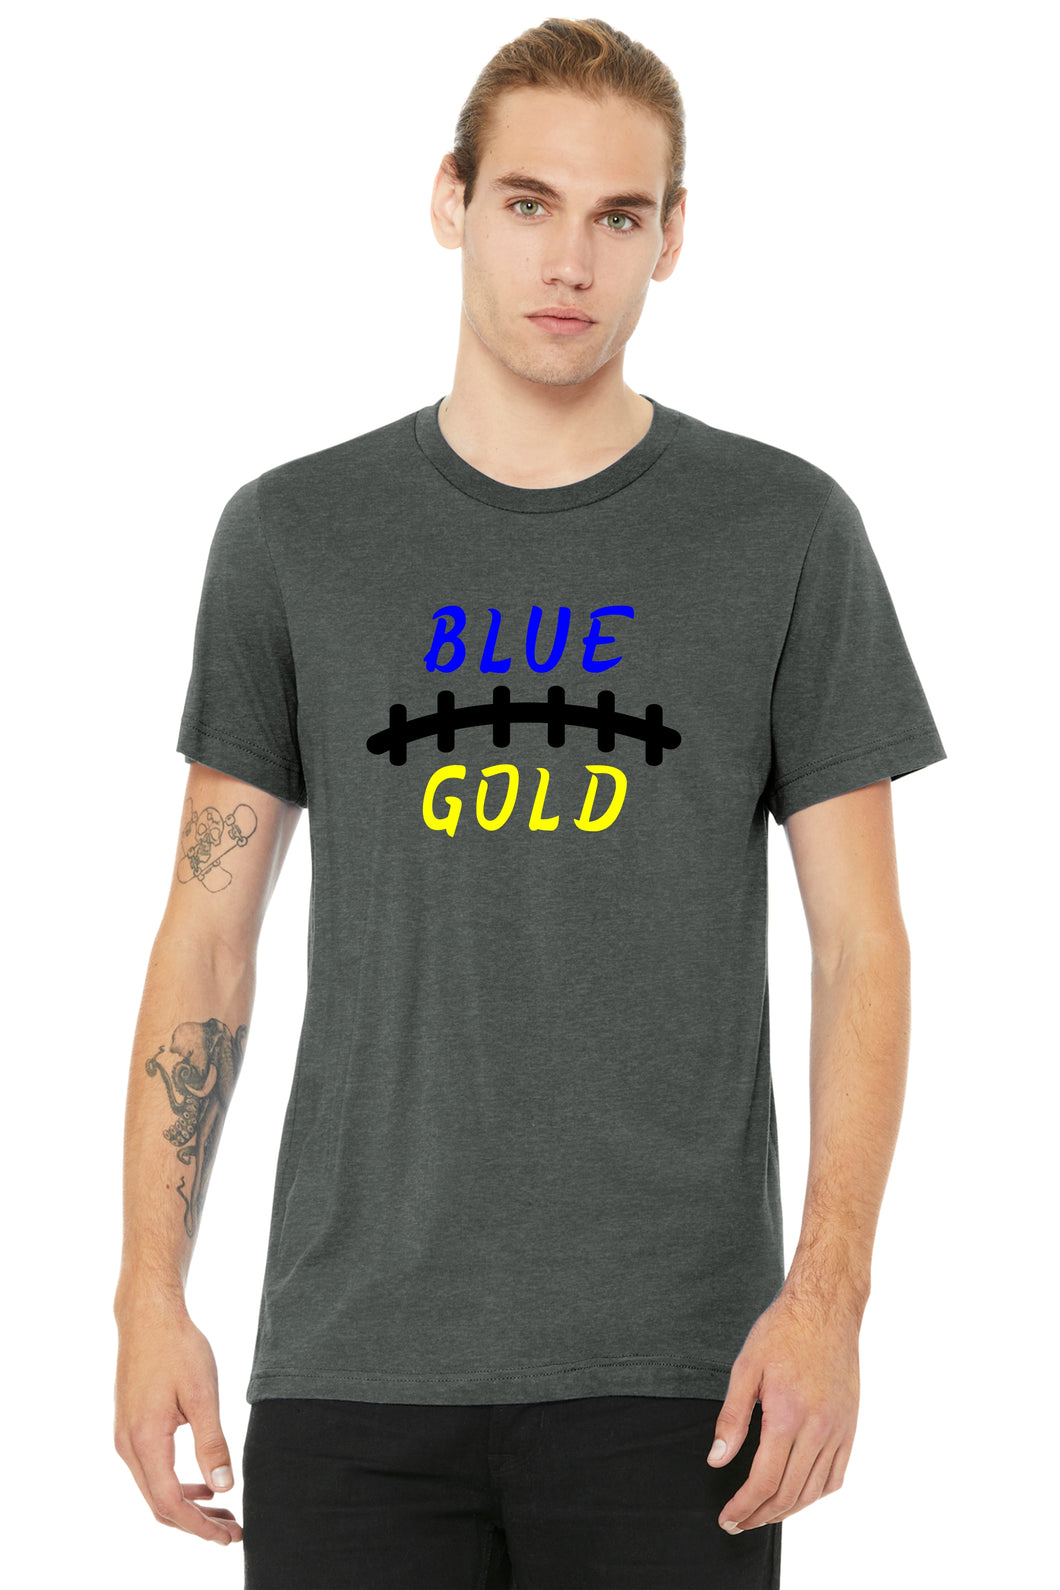 Football Blue and Gold Laces Unisex